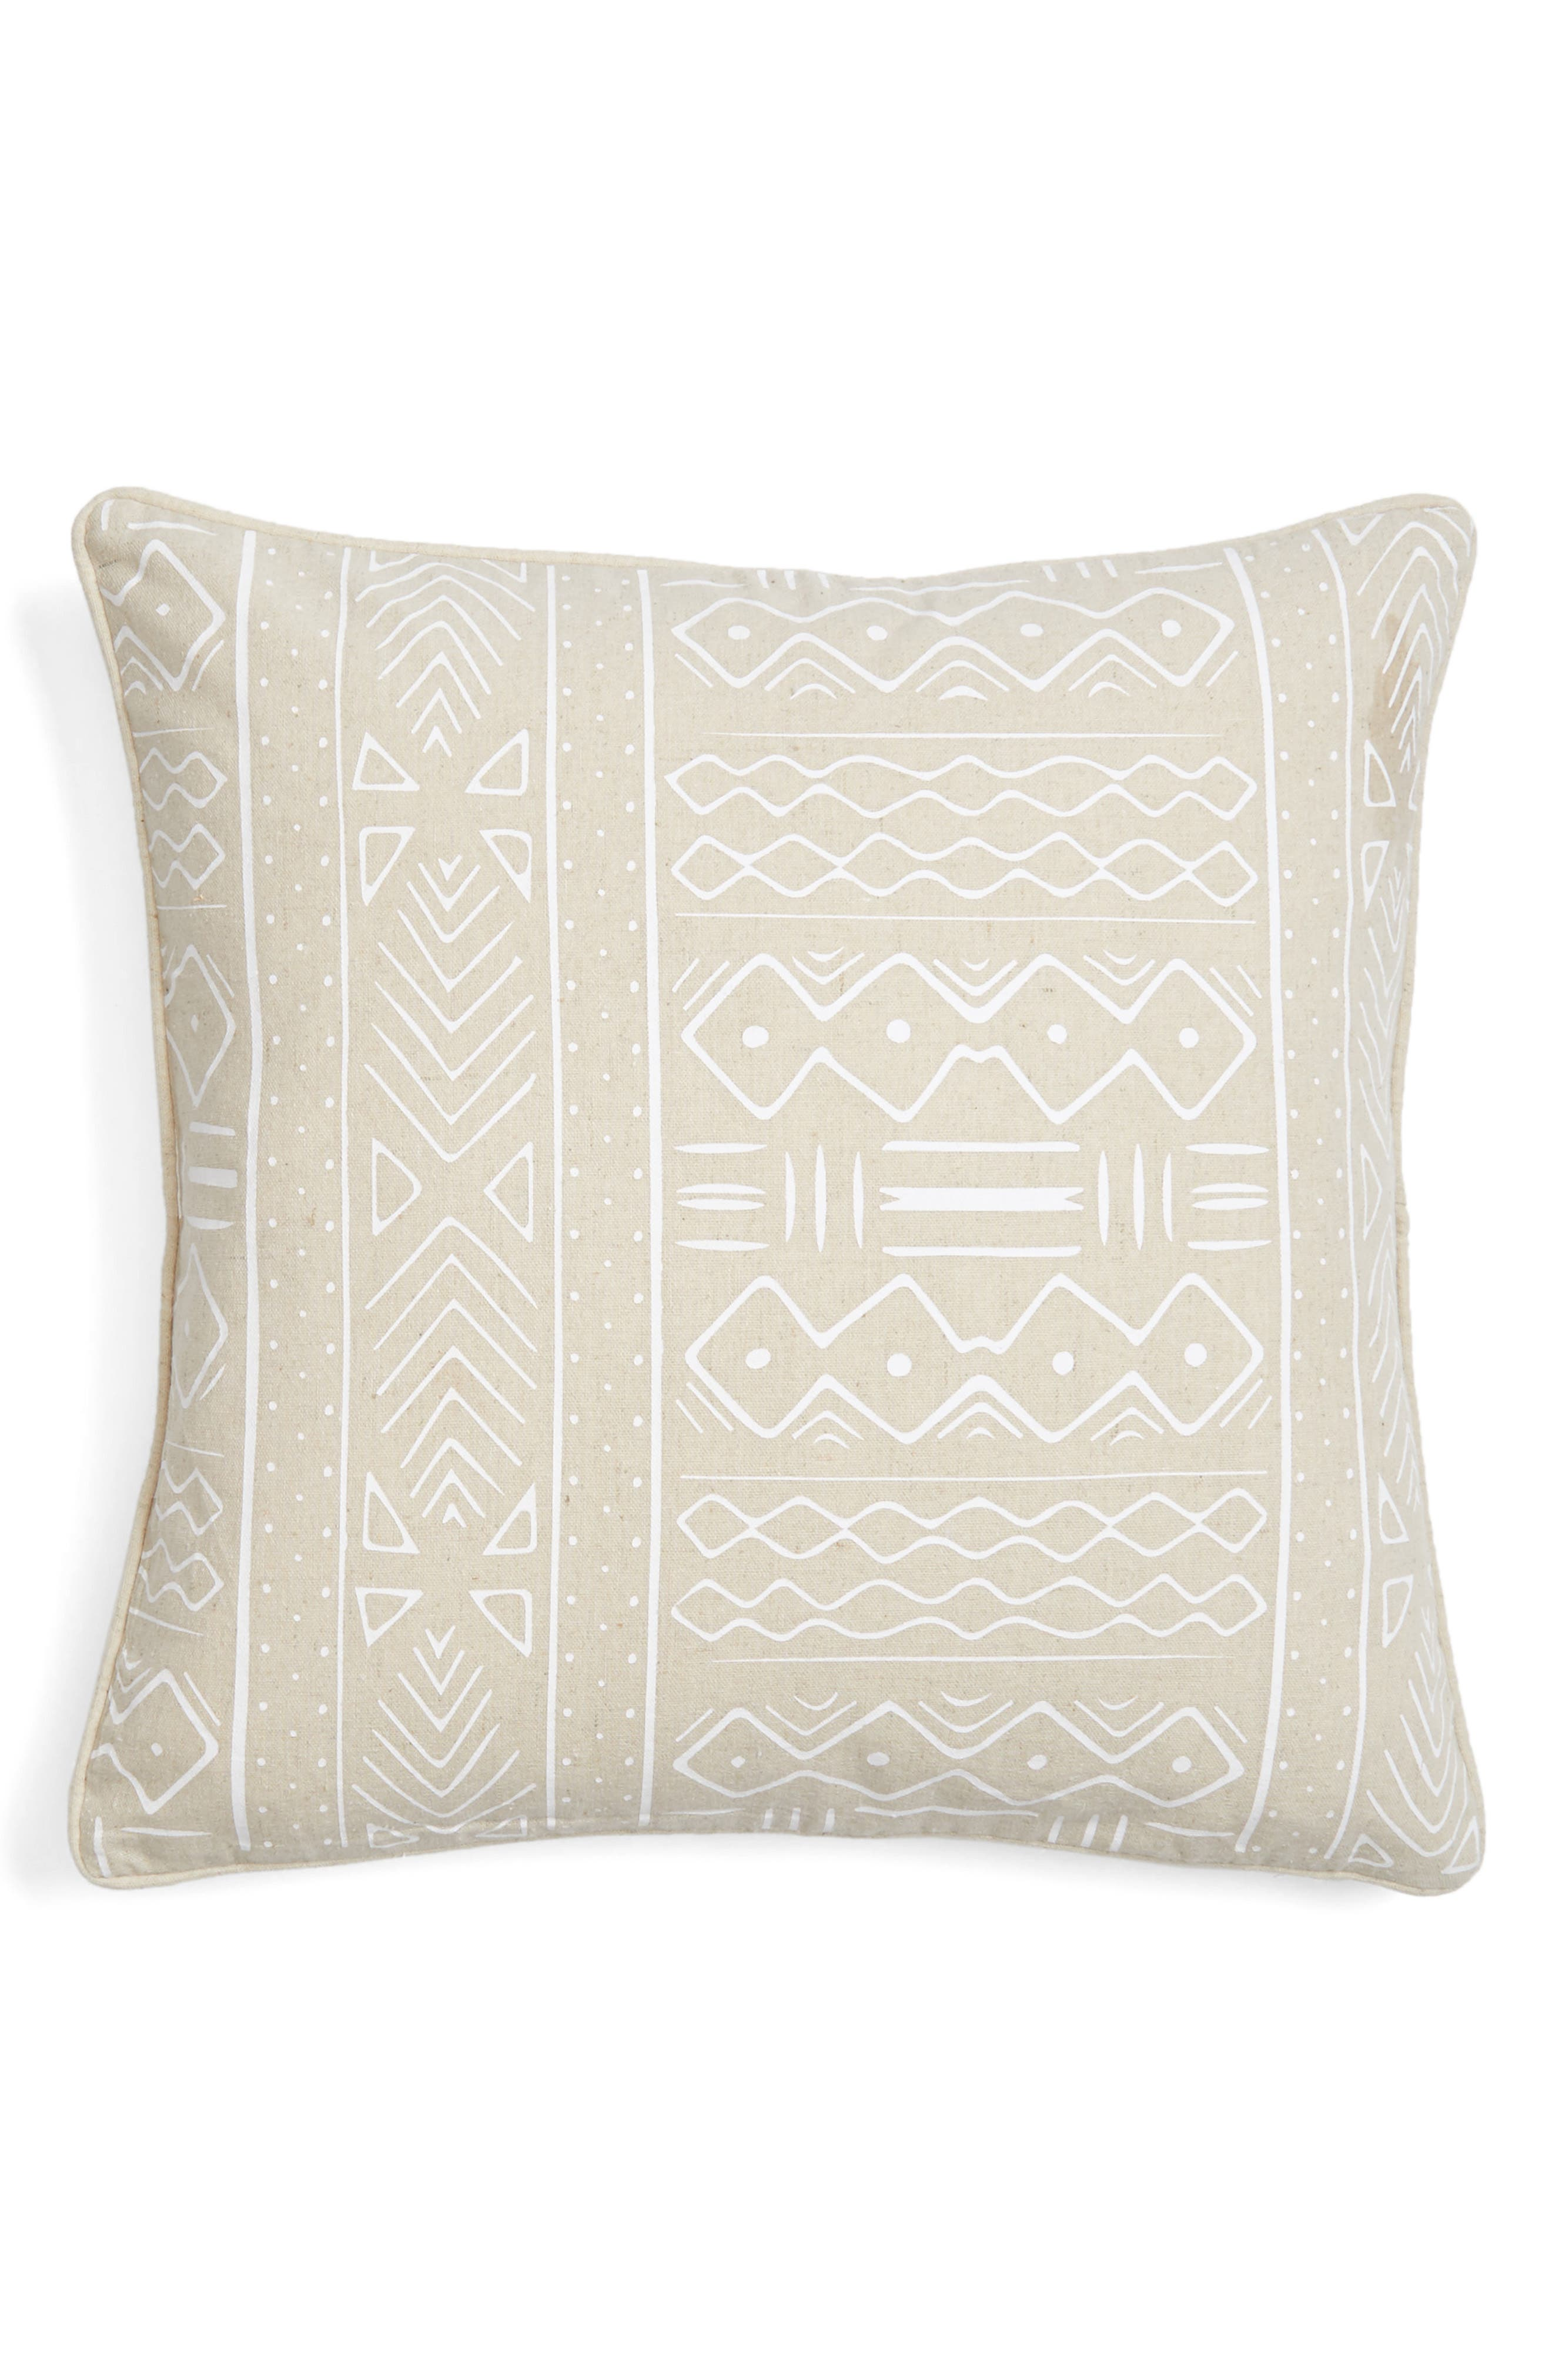 Alternate Image 1 Selected - Levtex Pinch Mudcloth Pillow